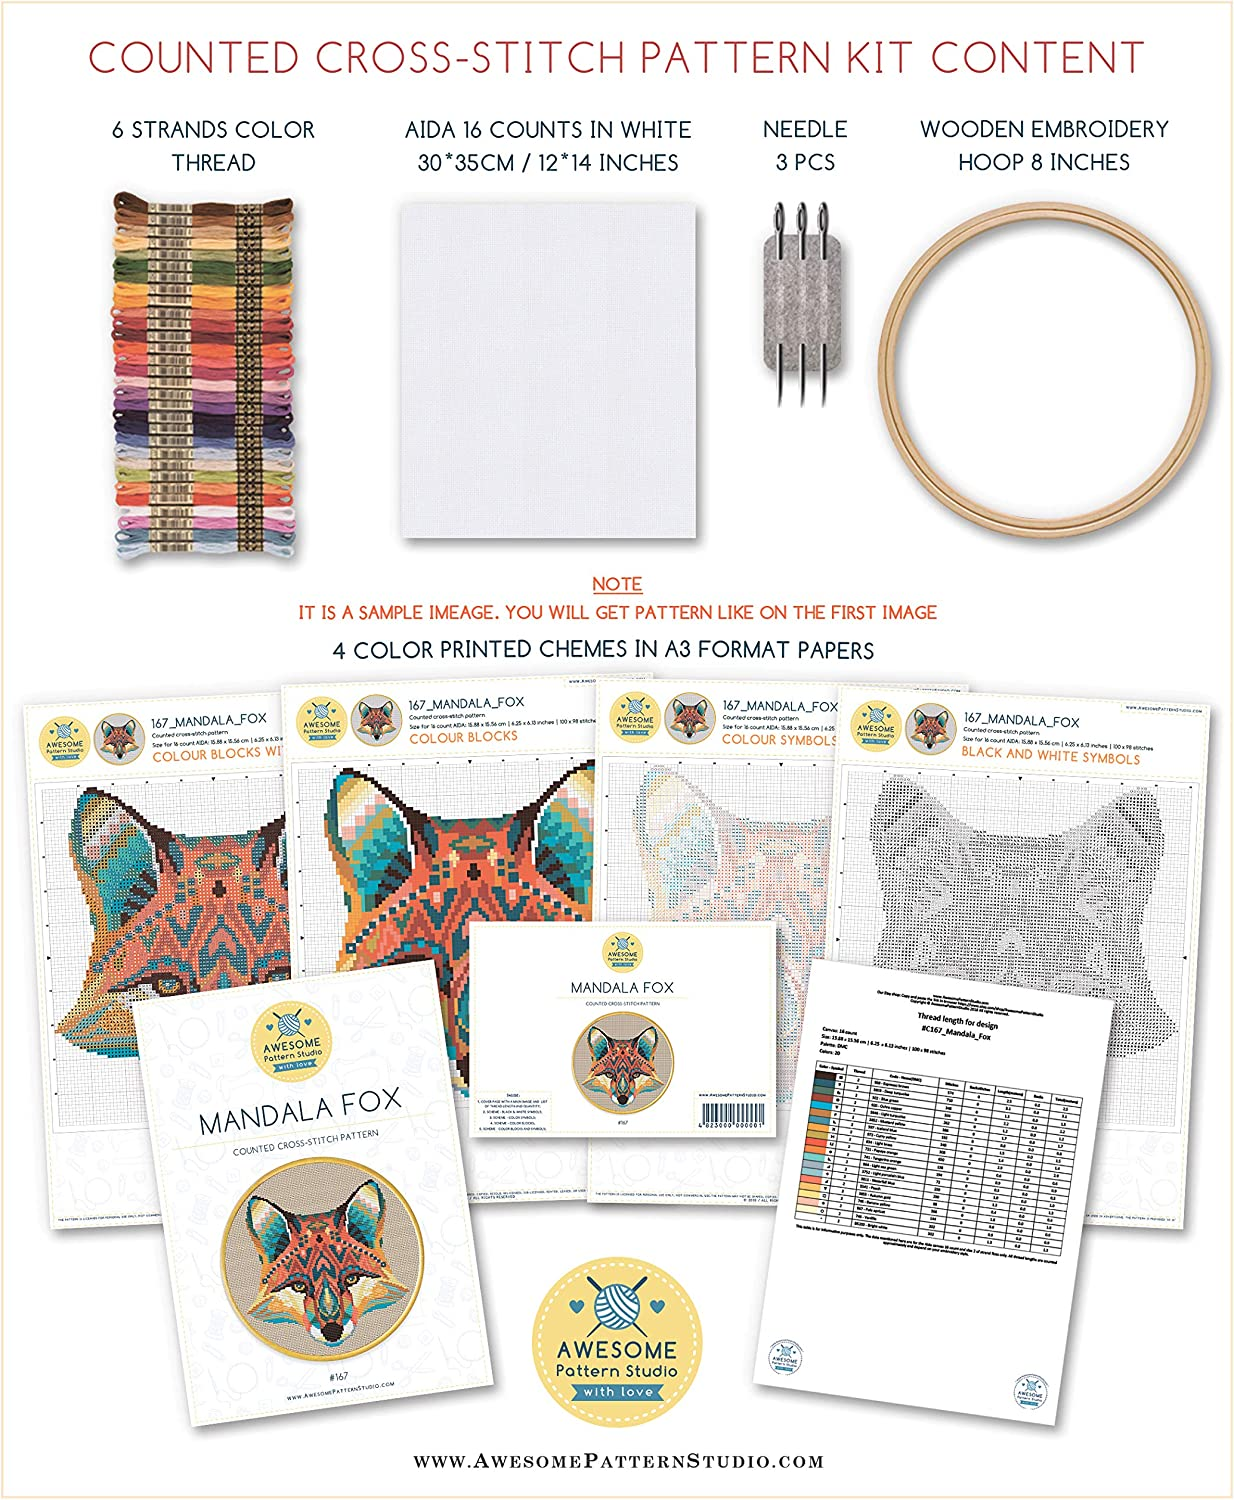 Embroidery Pattern Kit Brain K108 Counted Cross Stitch KIT#2 Threads Fabrick and 4 Printed Color Schemes Inside Needles